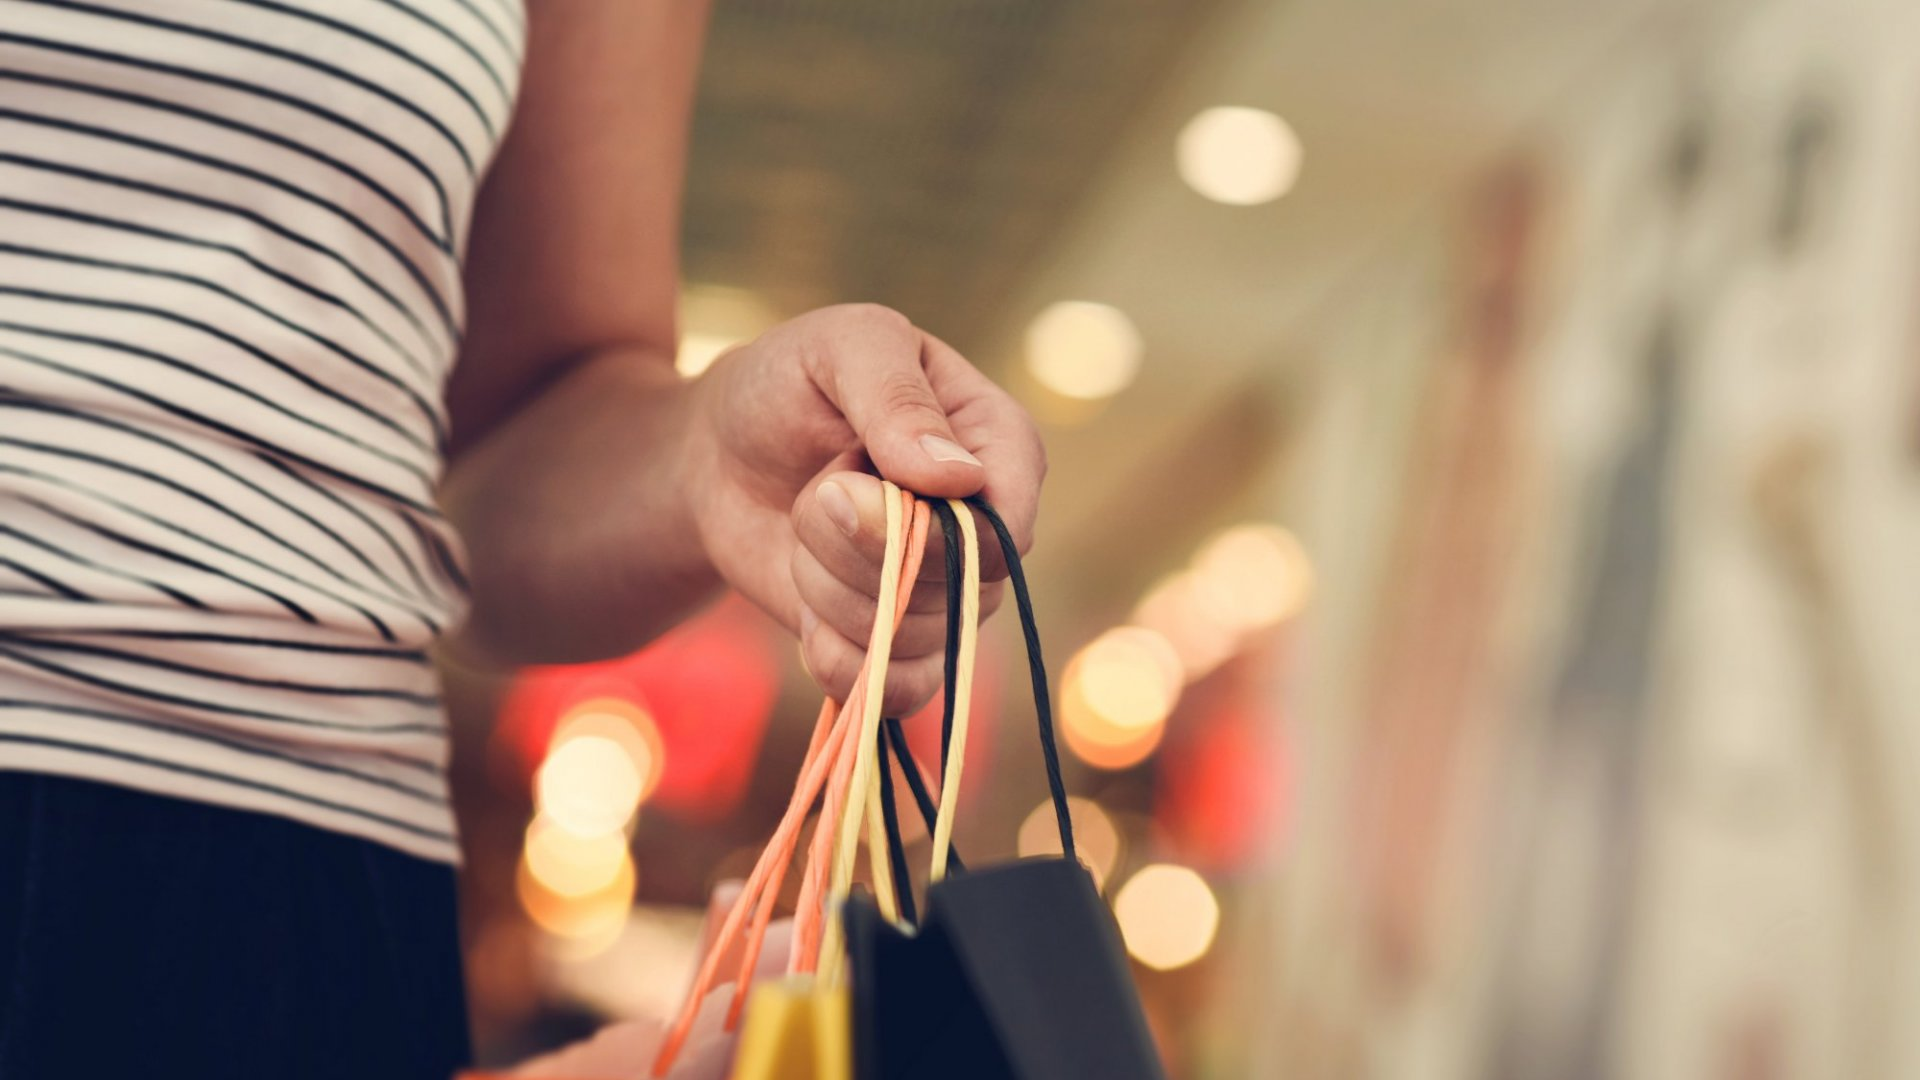 6 Savvy Tips to Increase Sales This Black Friday